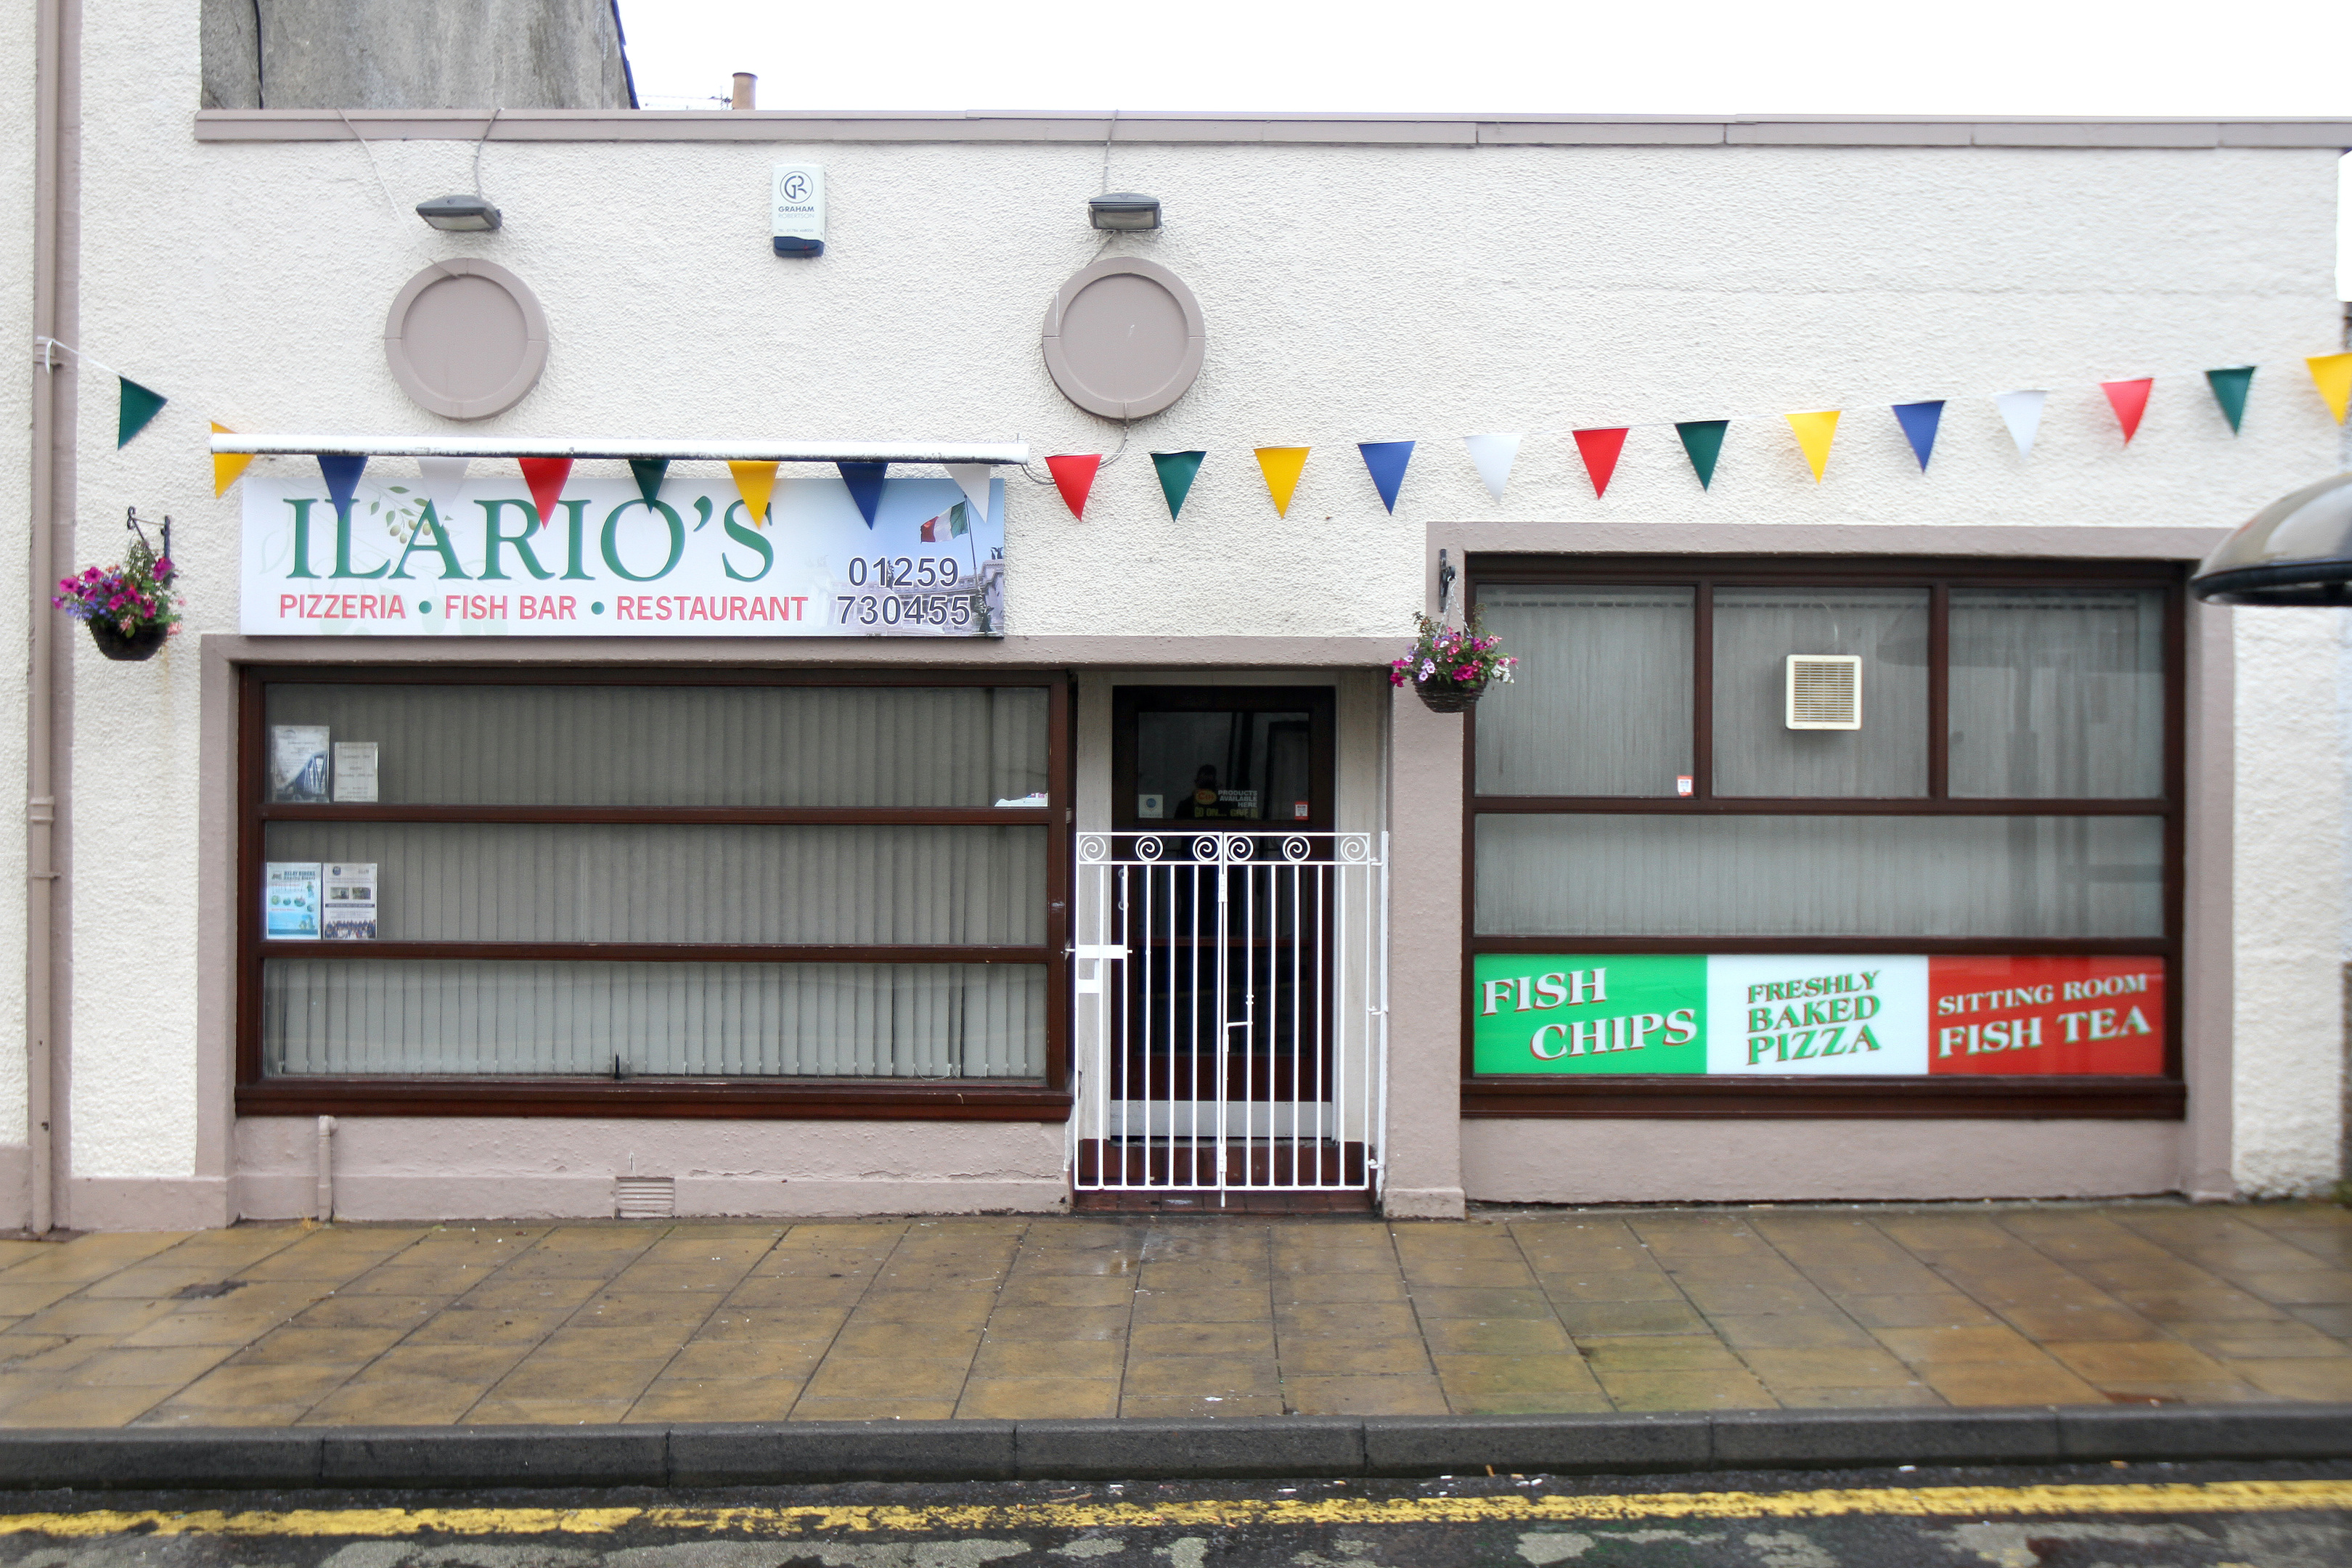 Ilario's was gutted by fire inside, although the building exterior of the building appeared unscathed